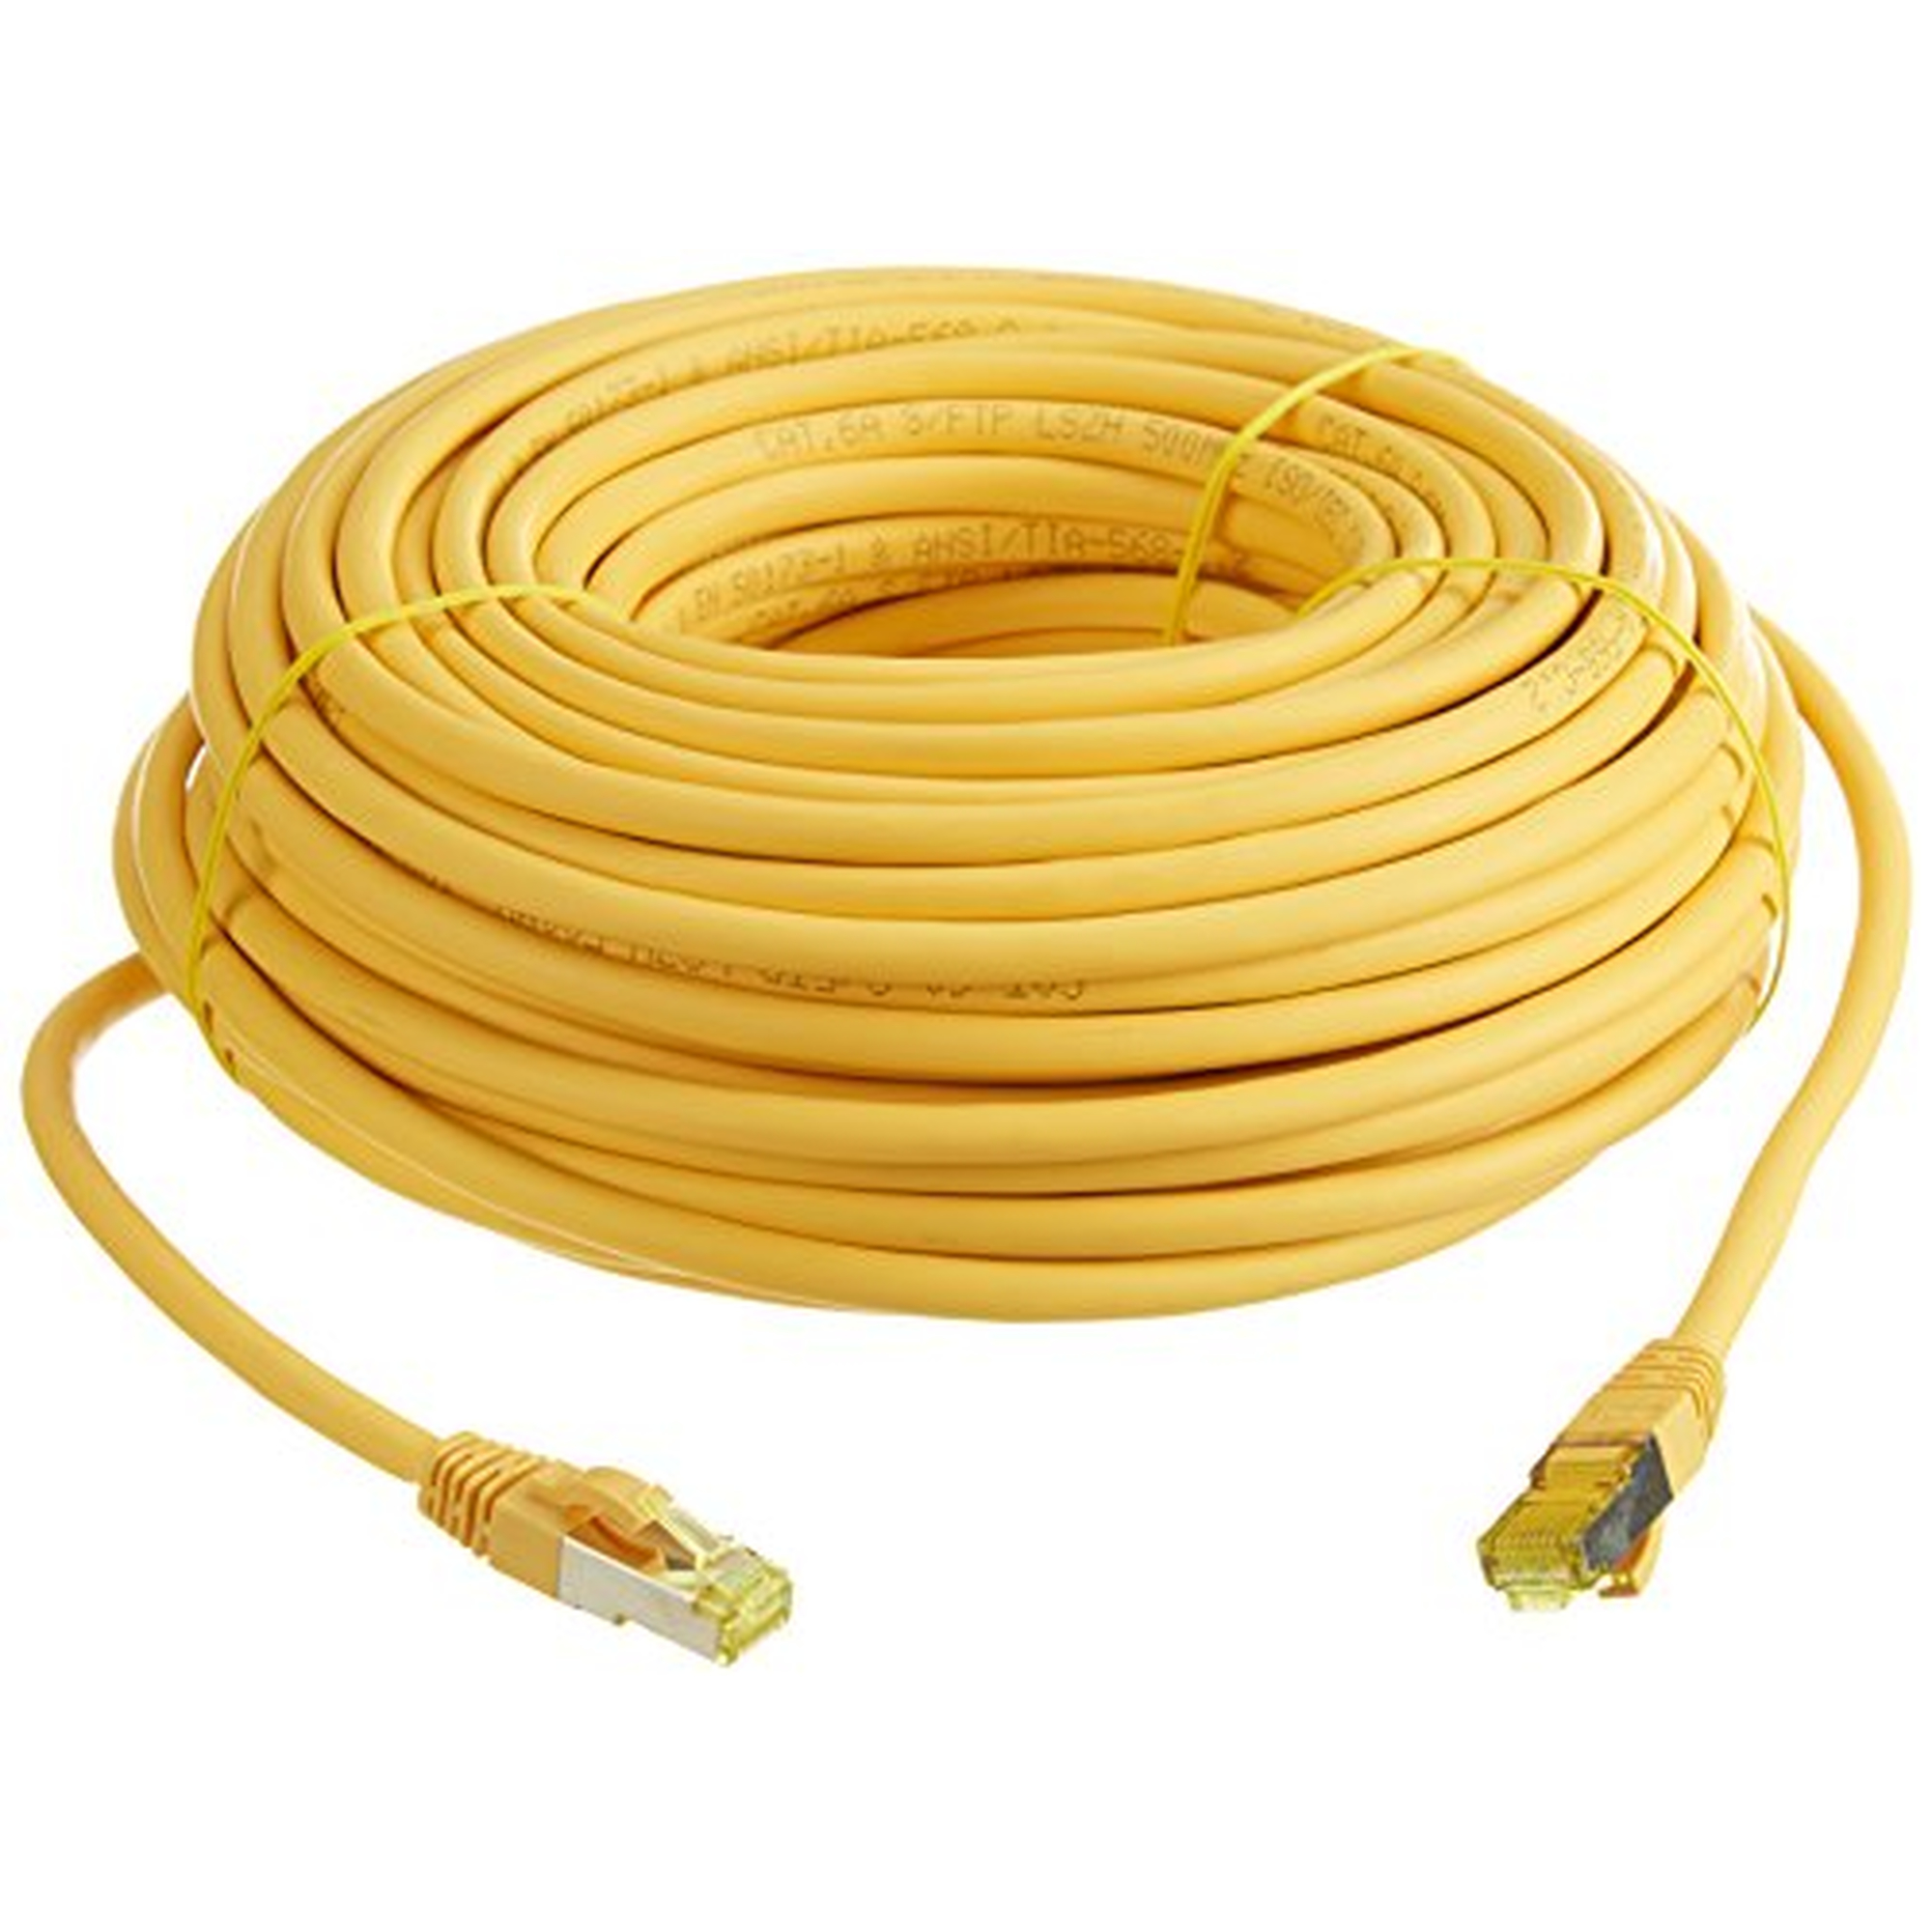 helos Patchkabel S/FTP (PIMF) CAT 6a gelb 30m